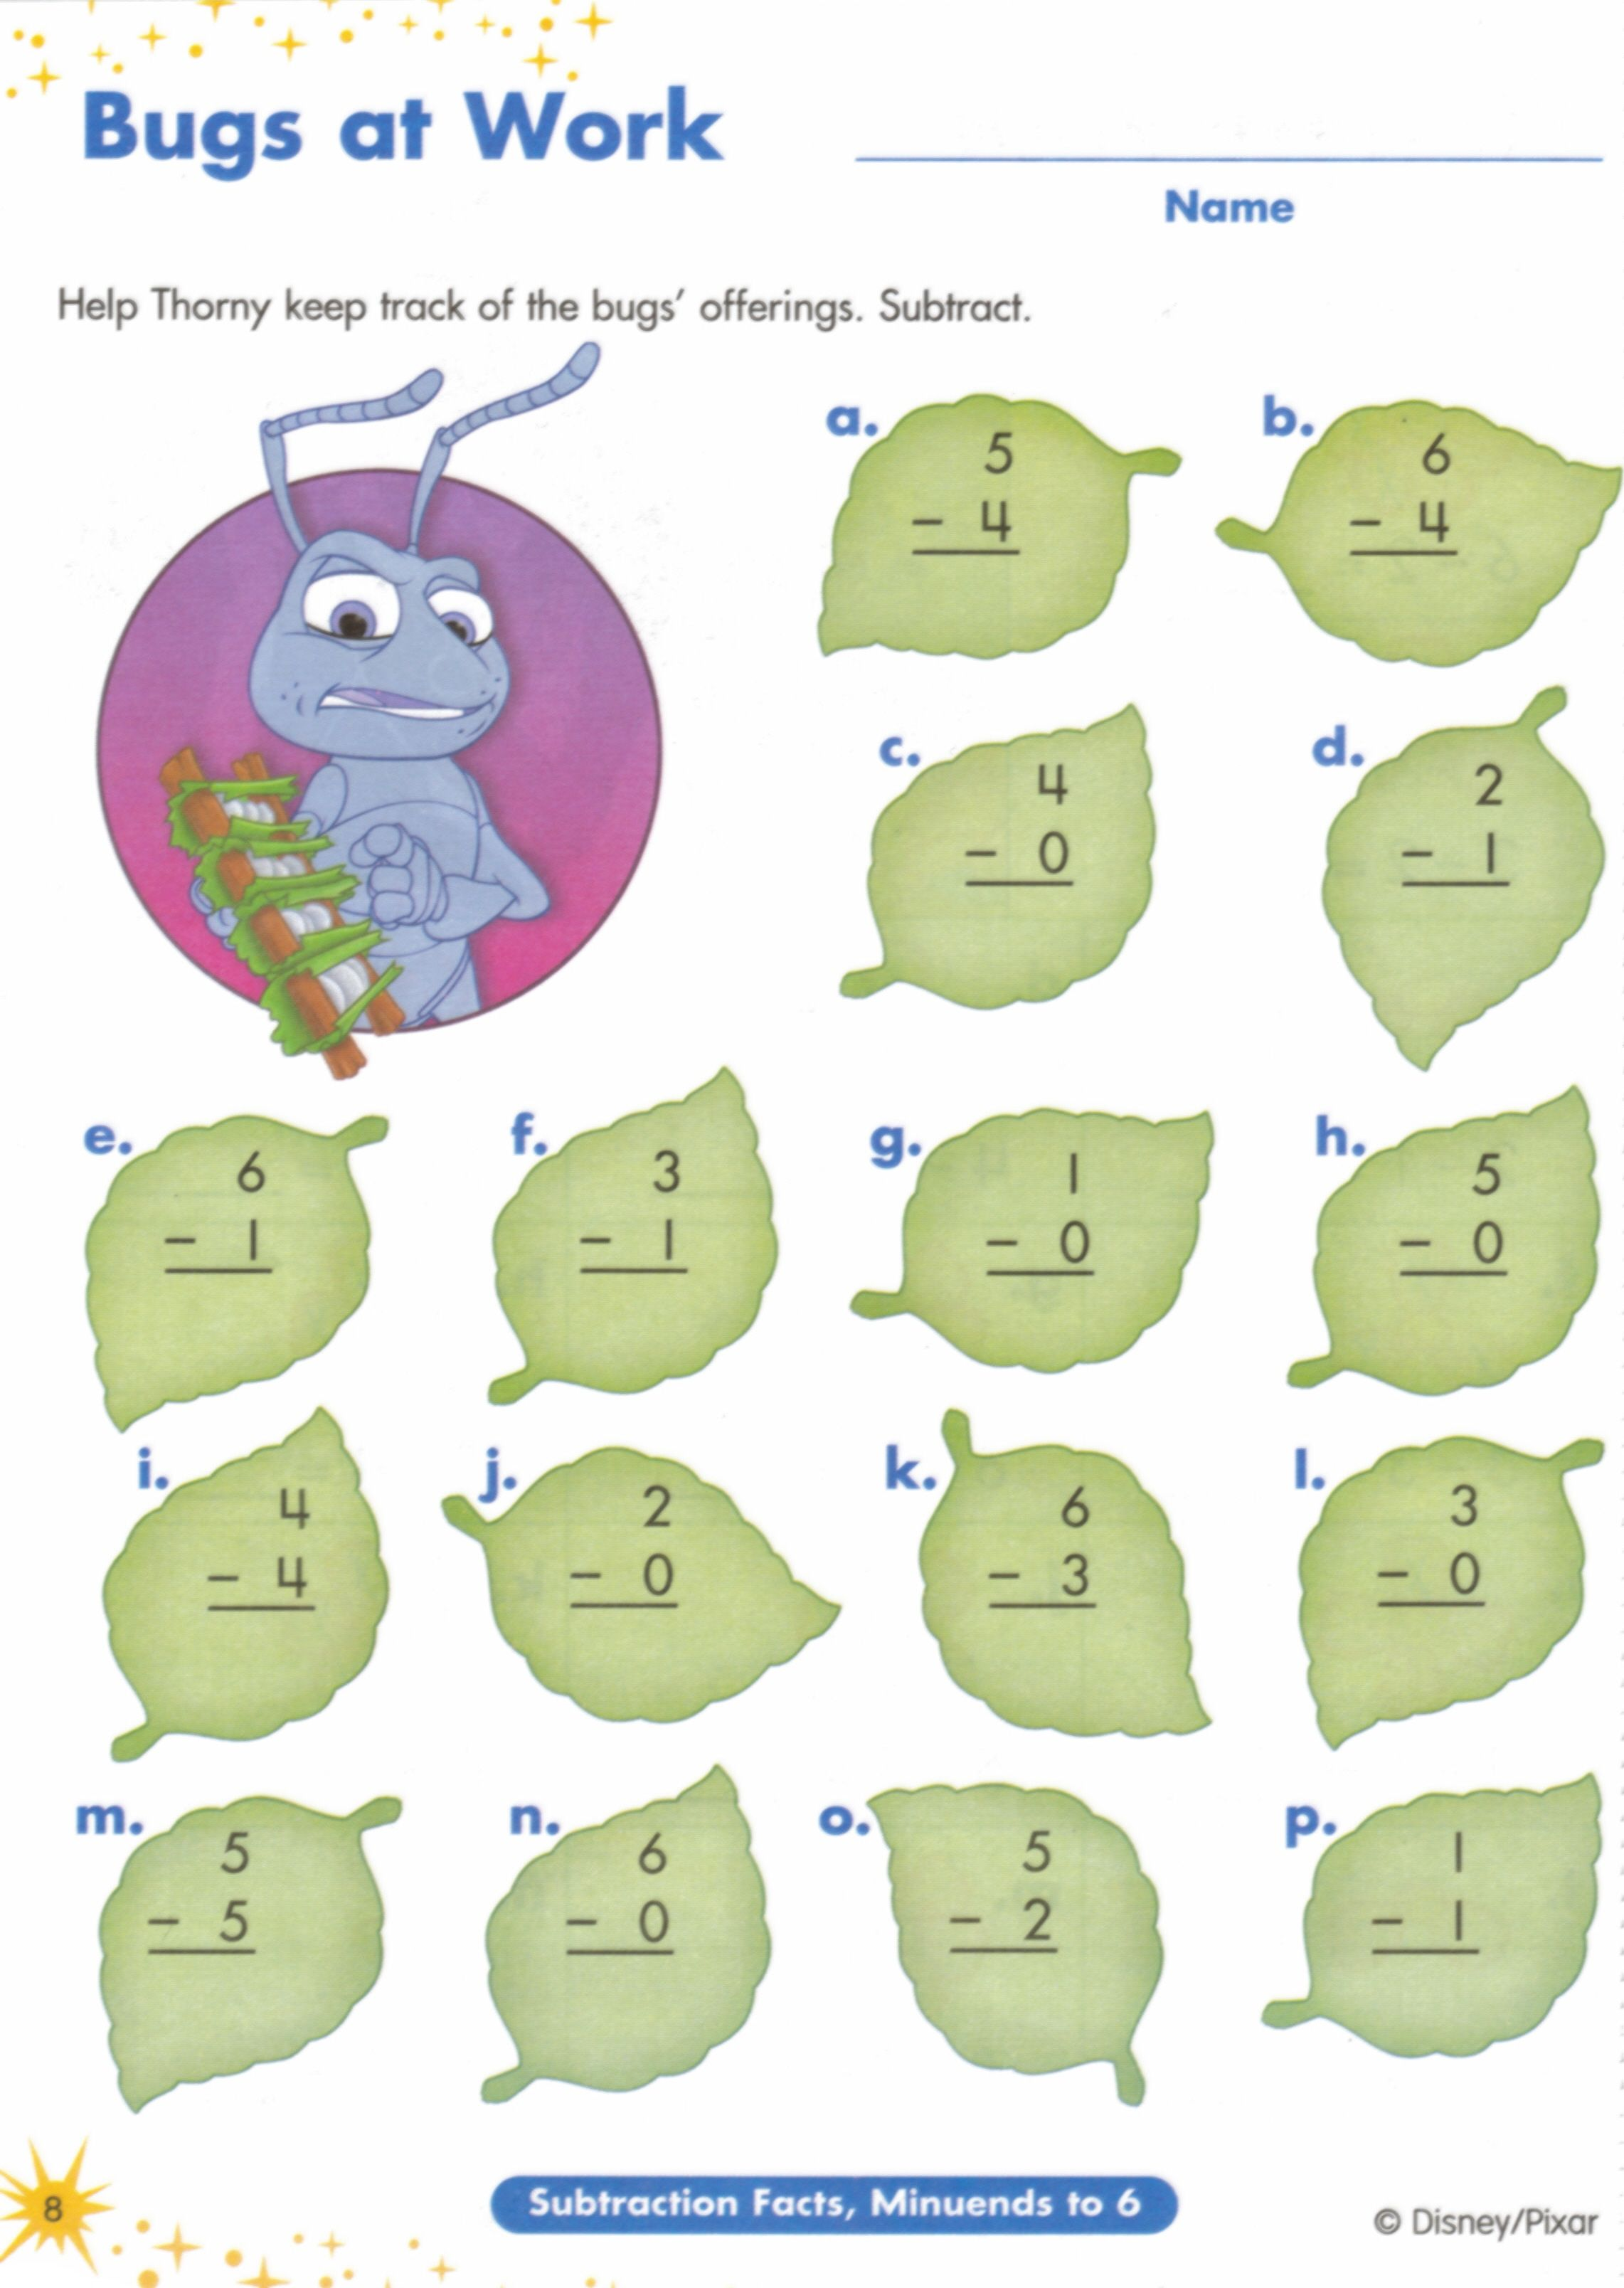 Proatmealus  Seductive  Images About Worksheets On Pinterest  Fun Facts For Kids  With Outstanding  Images About Worksheets On Pinterest  Fun Facts For Kids Earth Day Worksheets And Jungles With Captivating Multiplying Special Case Polynomials Worksheet Also Writing Short Story Outline Worksheets In Addition Movement Of The Body Worksheet And Spanish Worksheets For Middle School As Well As Sorting Shapes Worksheets For Kindergarten Additionally Compound Worksheets From Pinterestcom With Proatmealus  Outstanding  Images About Worksheets On Pinterest  Fun Facts For Kids  With Captivating  Images About Worksheets On Pinterest  Fun Facts For Kids Earth Day Worksheets And Jungles And Seductive Multiplying Special Case Polynomials Worksheet Also Writing Short Story Outline Worksheets In Addition Movement Of The Body Worksheet From Pinterestcom